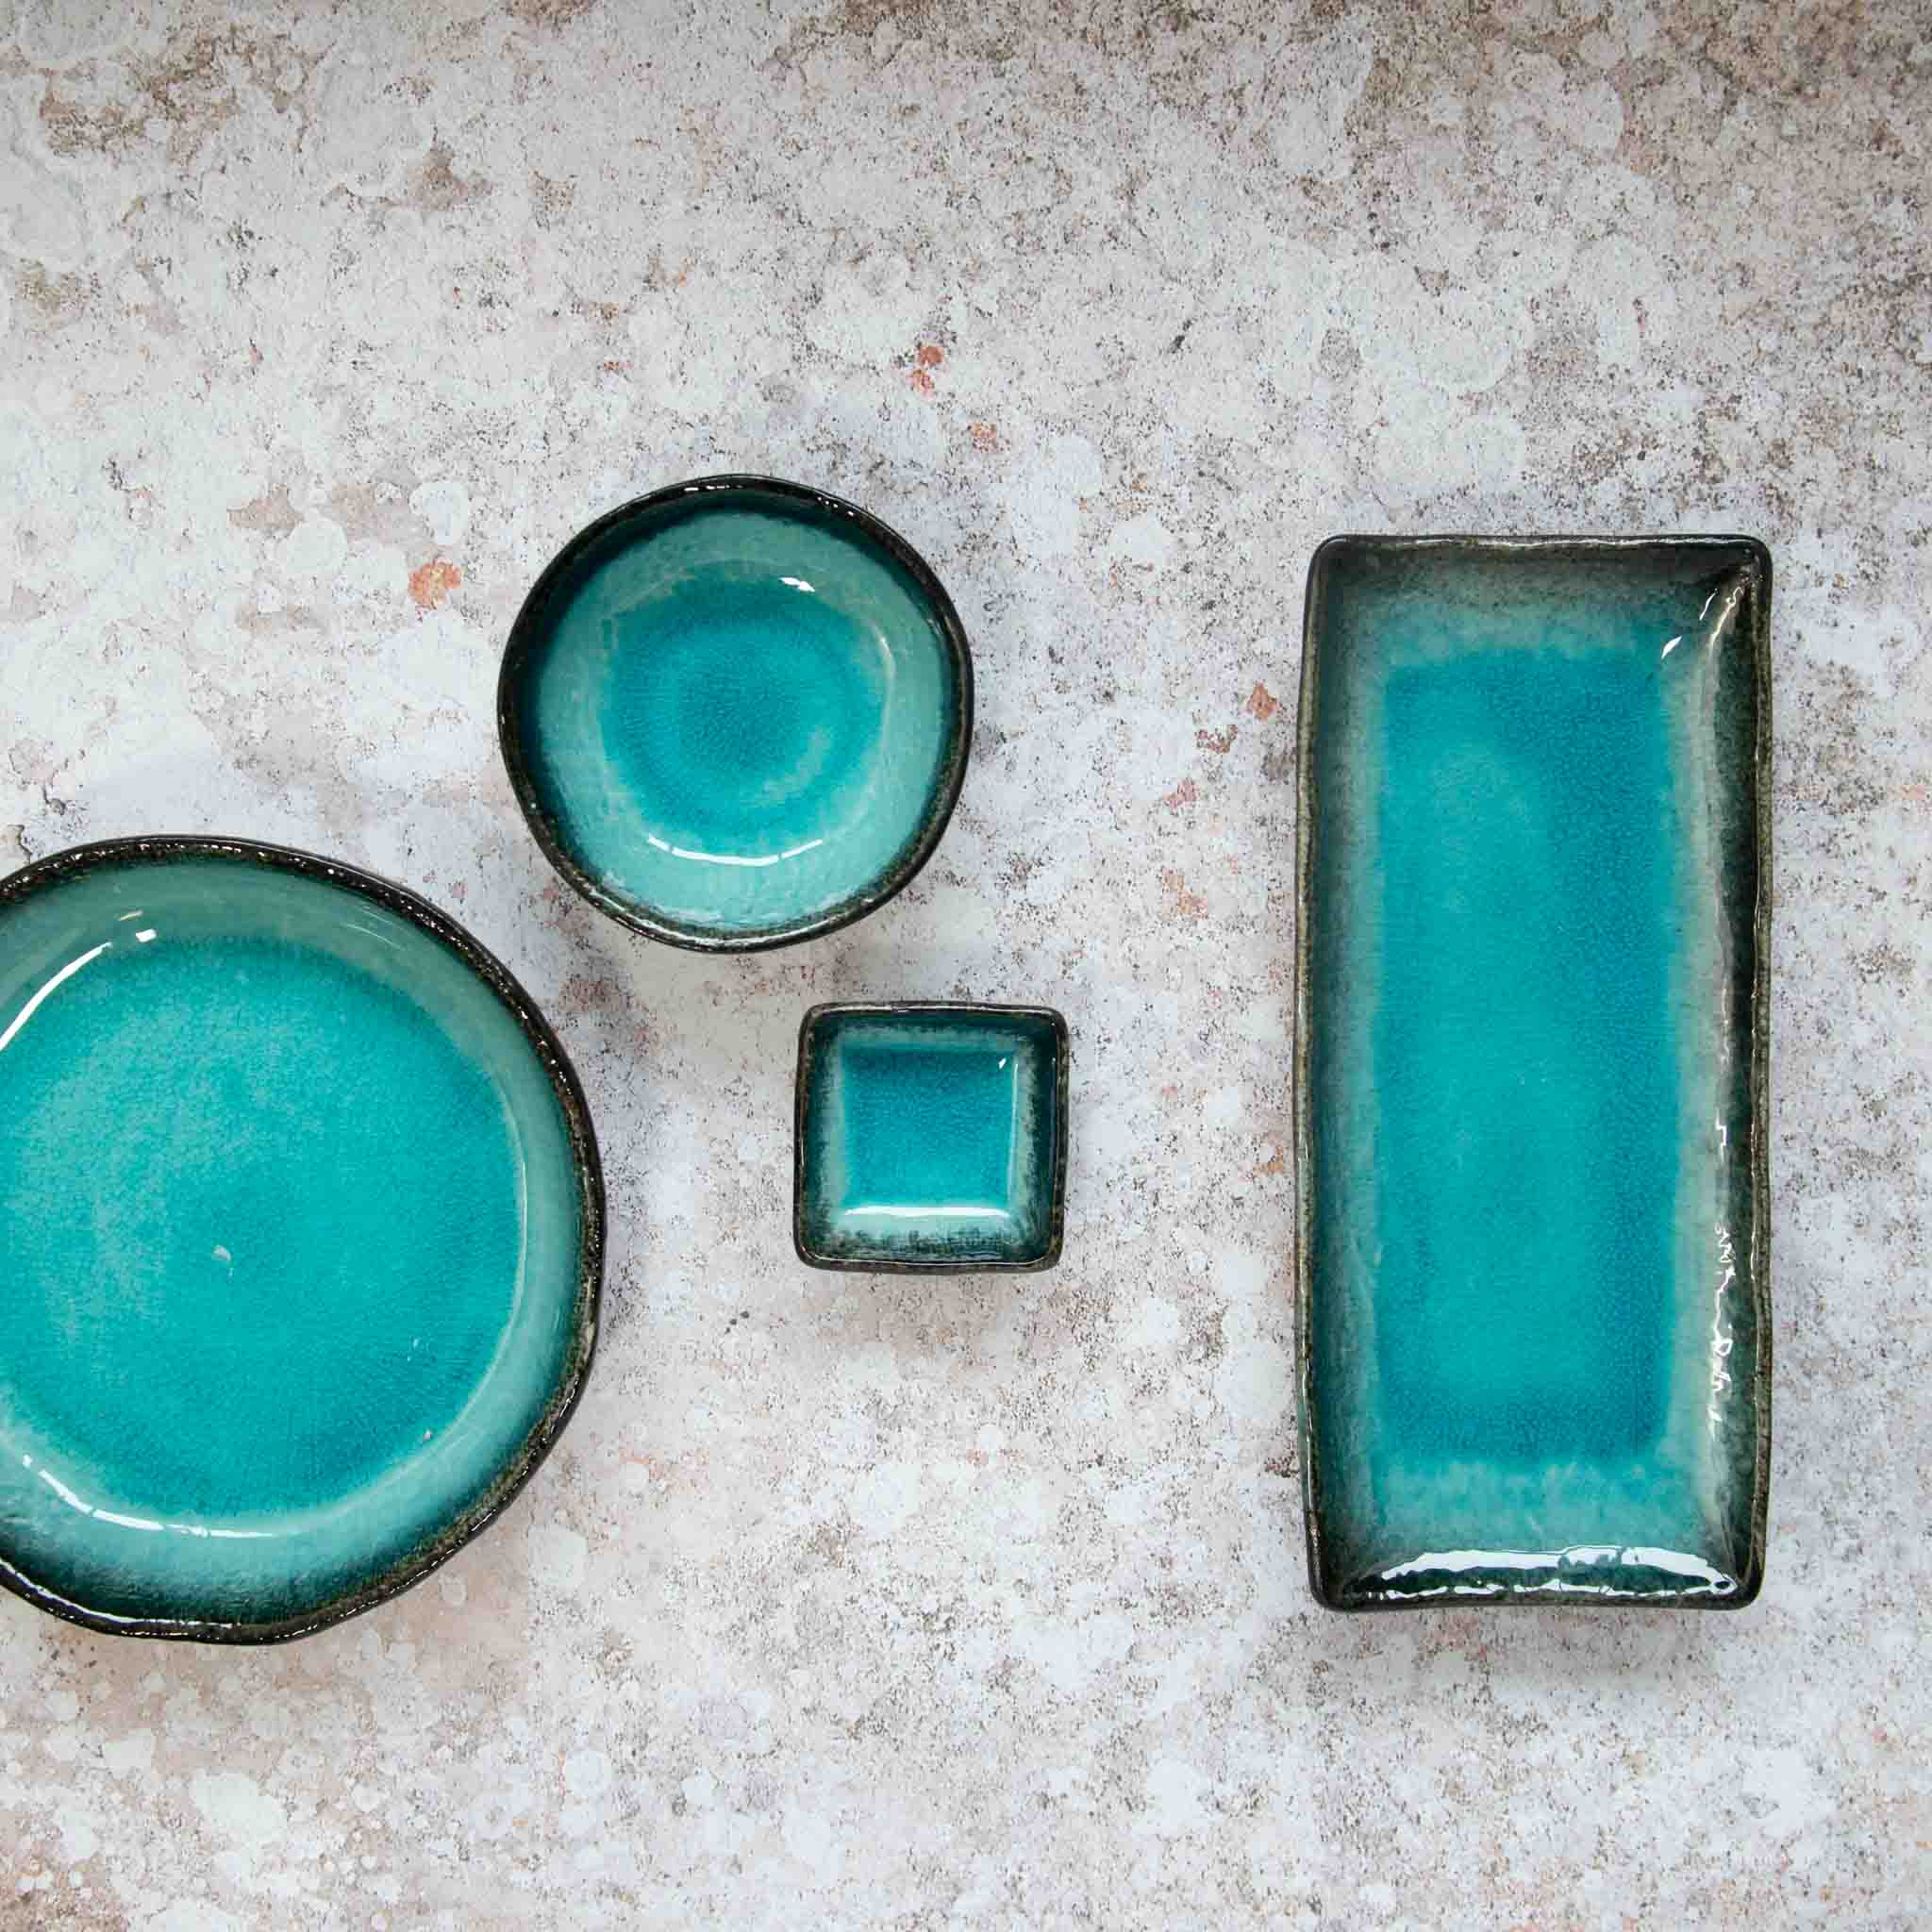 Kiji Stoneware & Ceramics Turquoise Glaze Bowl 12cm dia x 4cm high Tableware Japanese Tableware Japanese Food